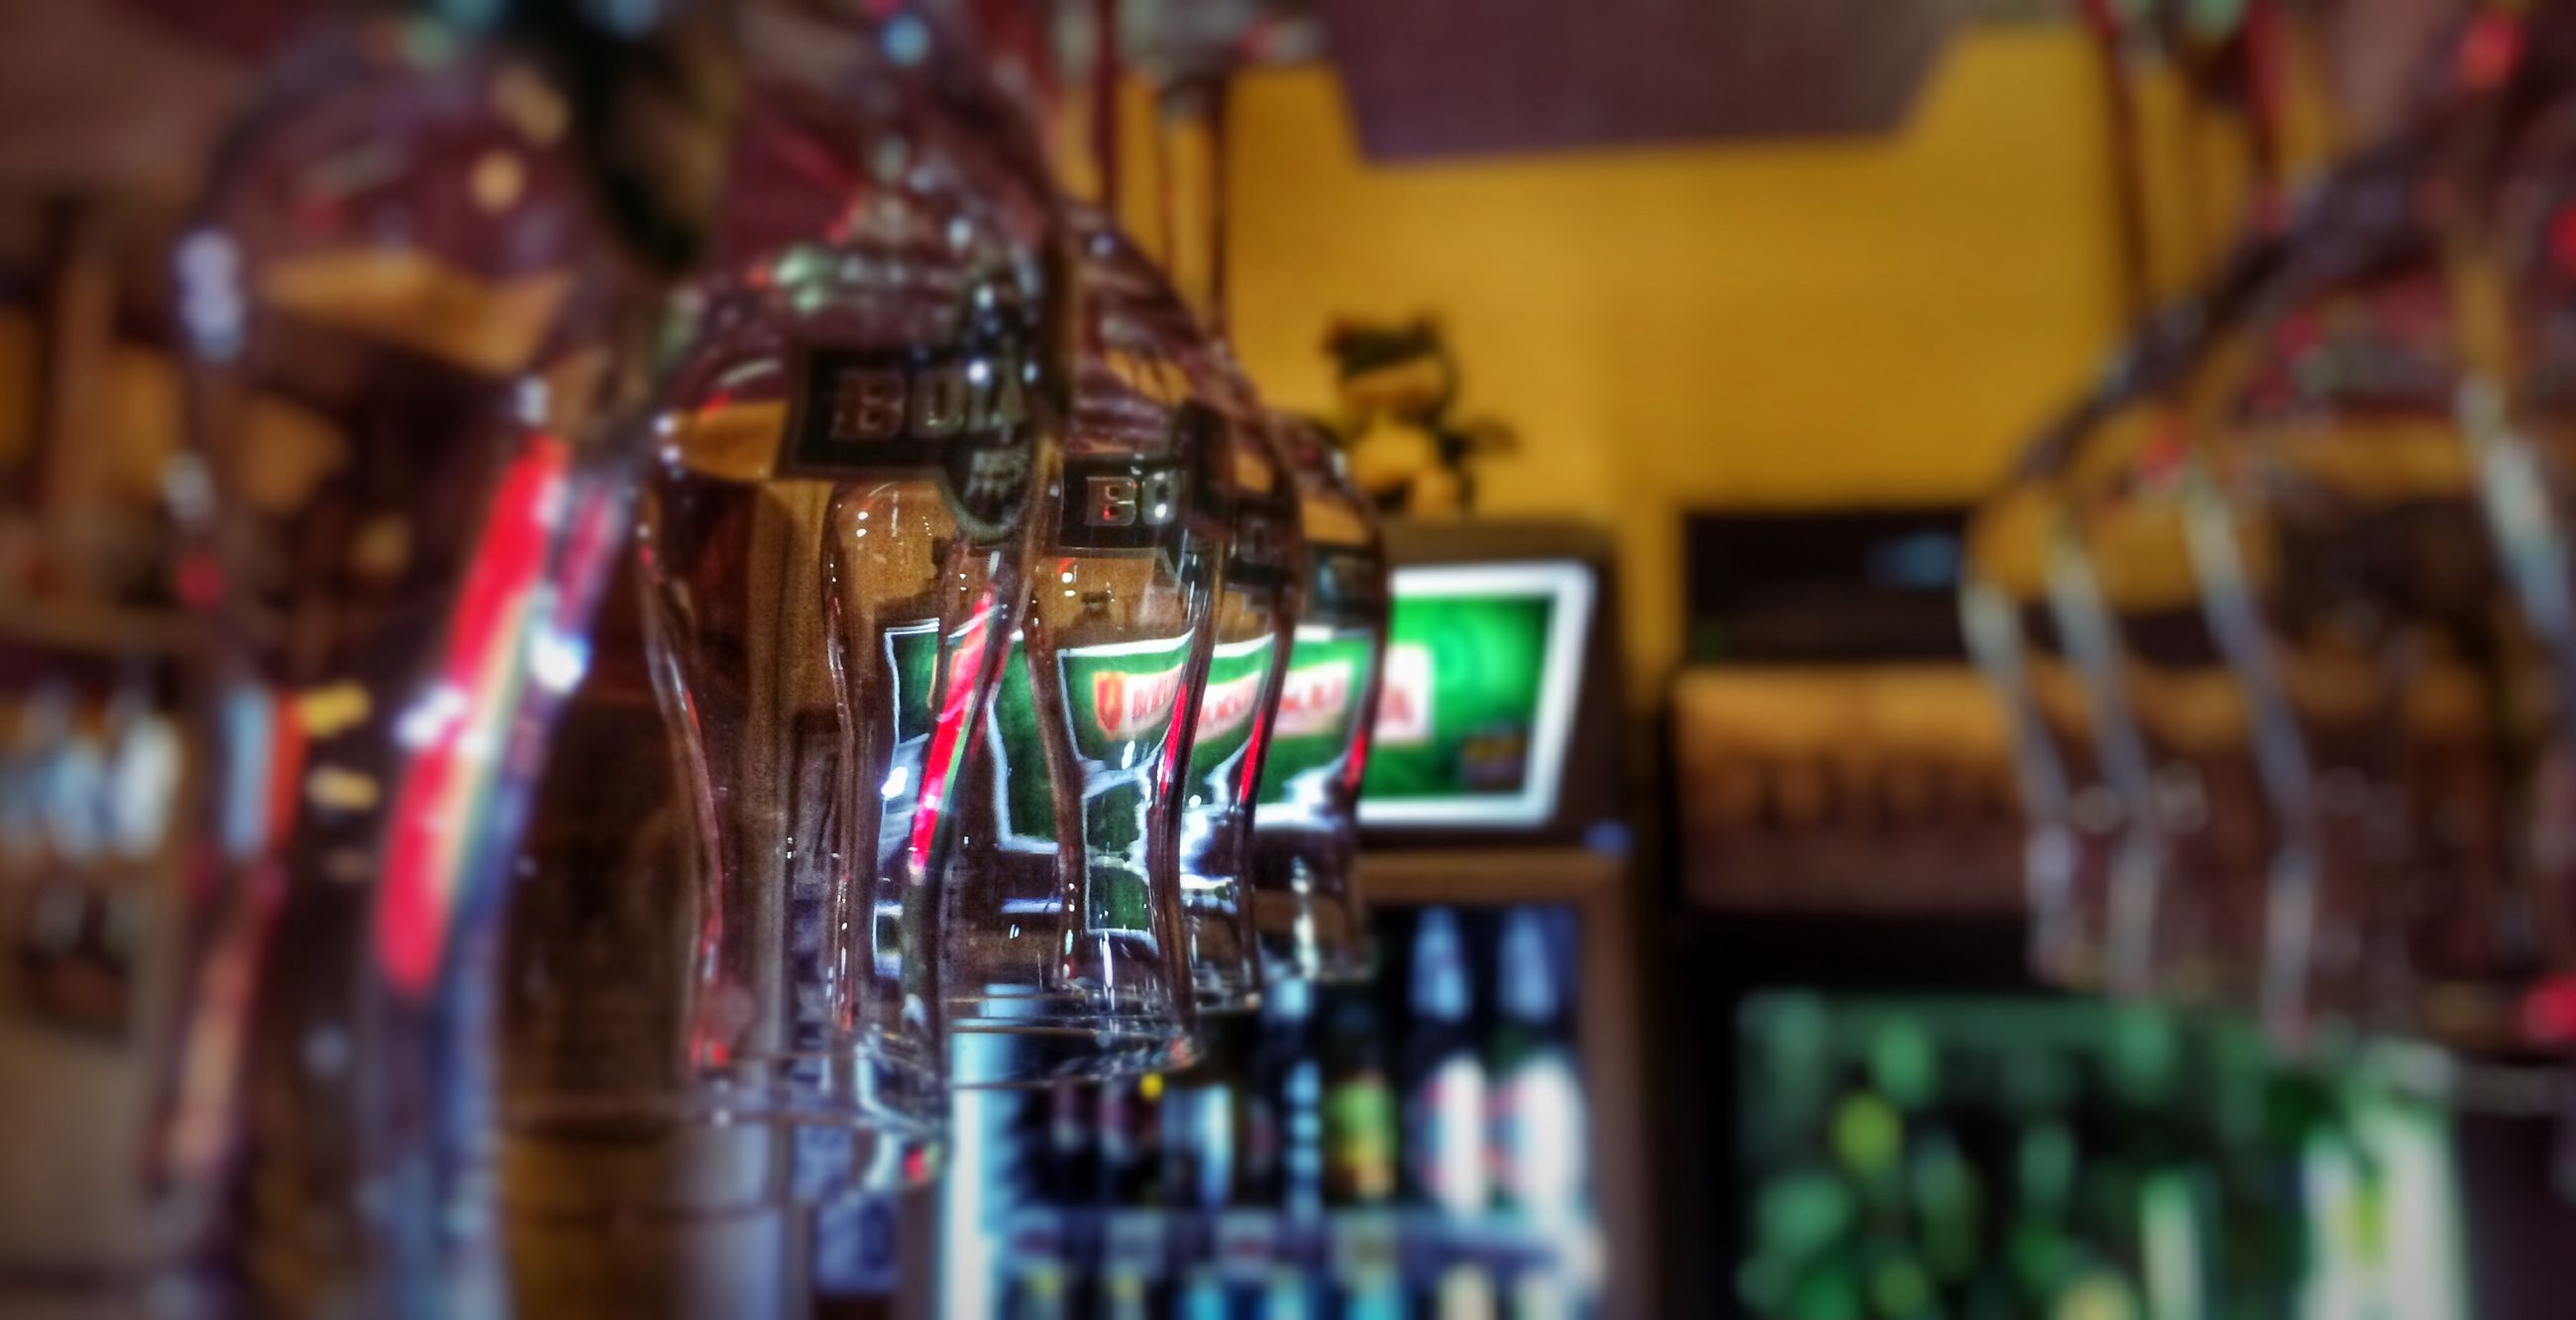 indoors, illuminated, selective focus, focus on foreground, table, multi colored, still life, variation, retail, glass - material, store, large group of objects, close-up, choice, incidental people, arrangement, night, reflection, no people, in a row